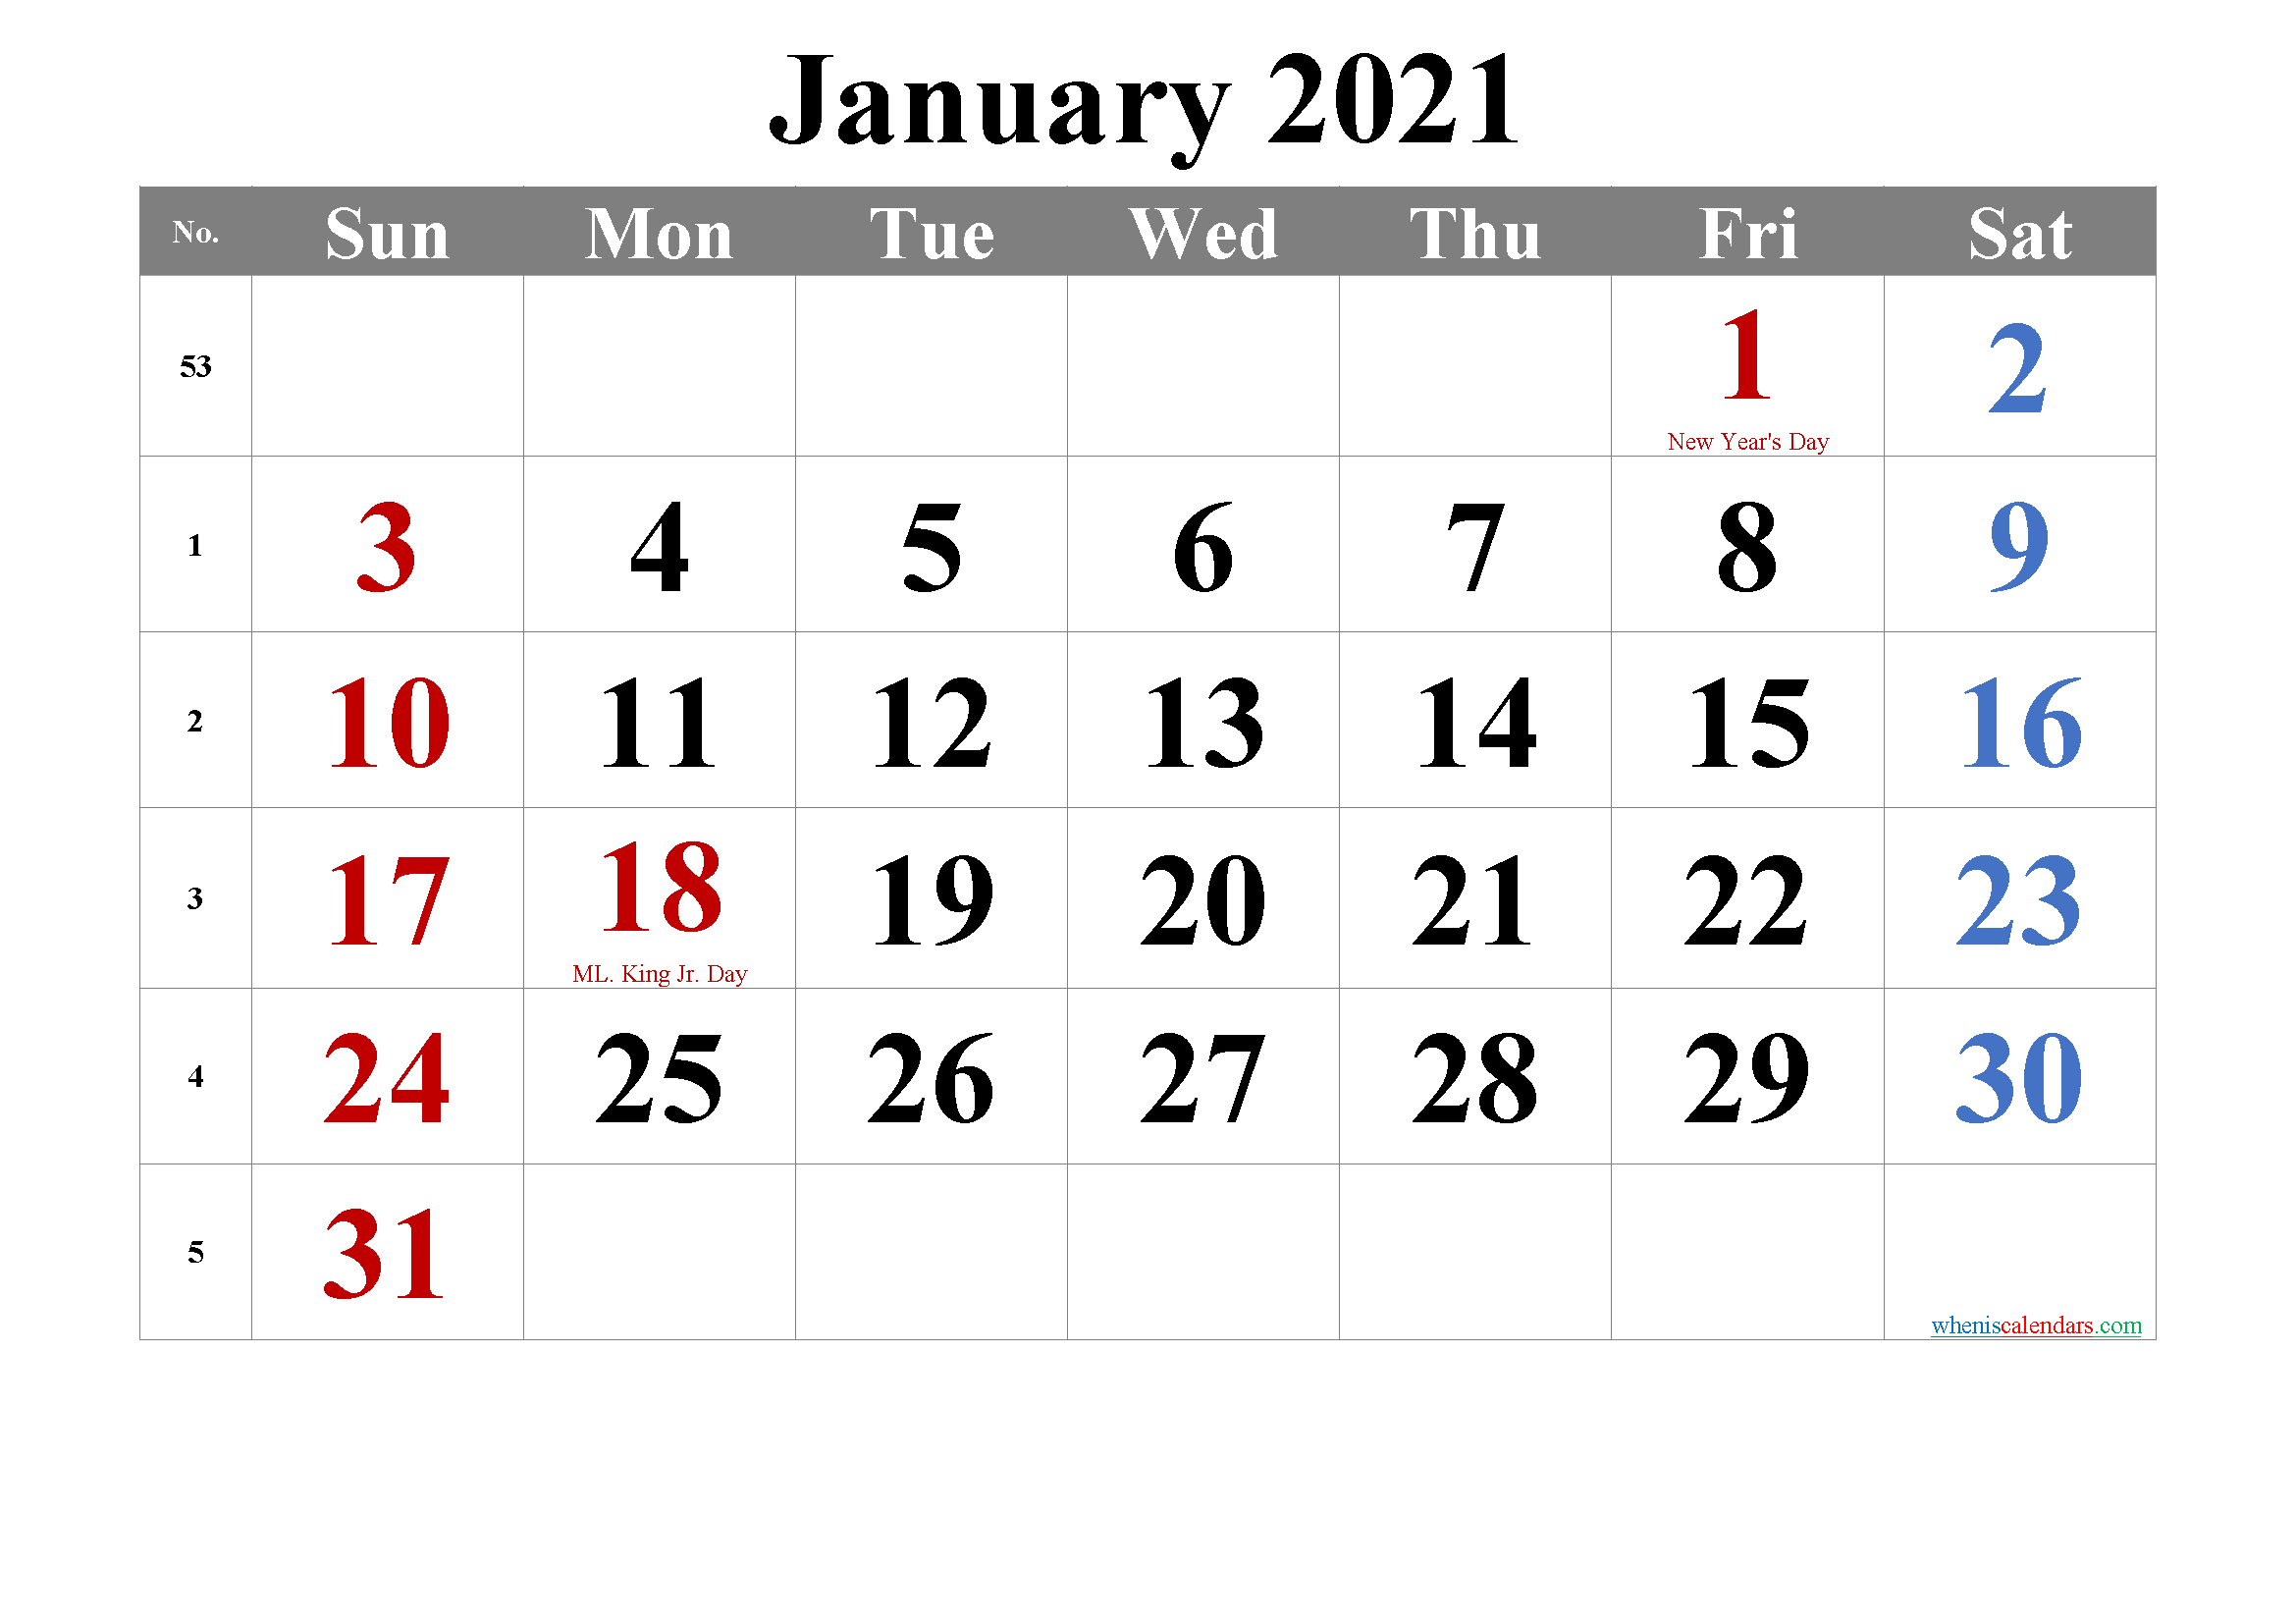 January 2021 Calendar with Holidays Printable